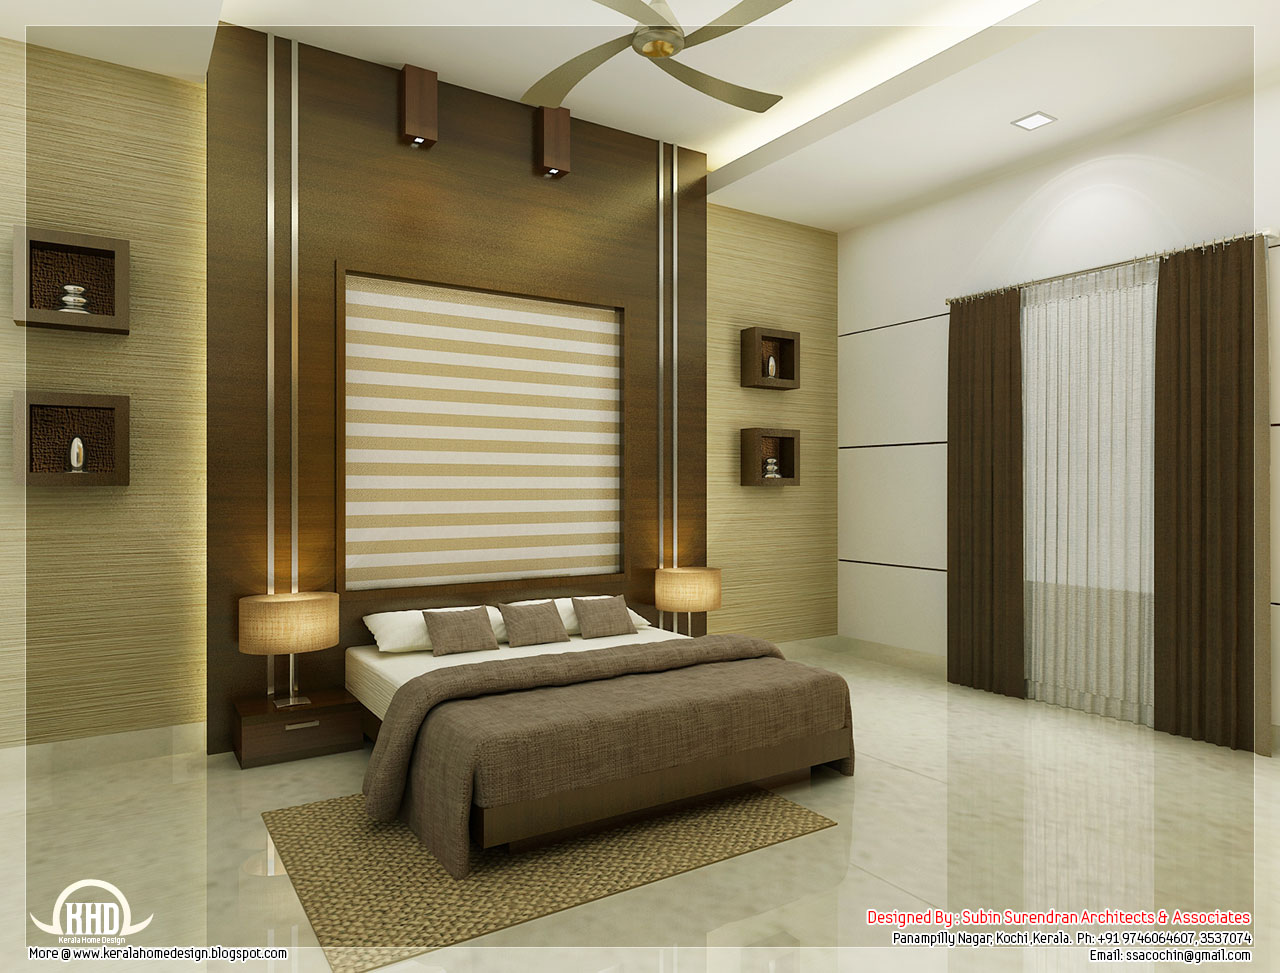 Amazing Bedroom Interior Design 1280 x 973 · 226 kB · jpeg